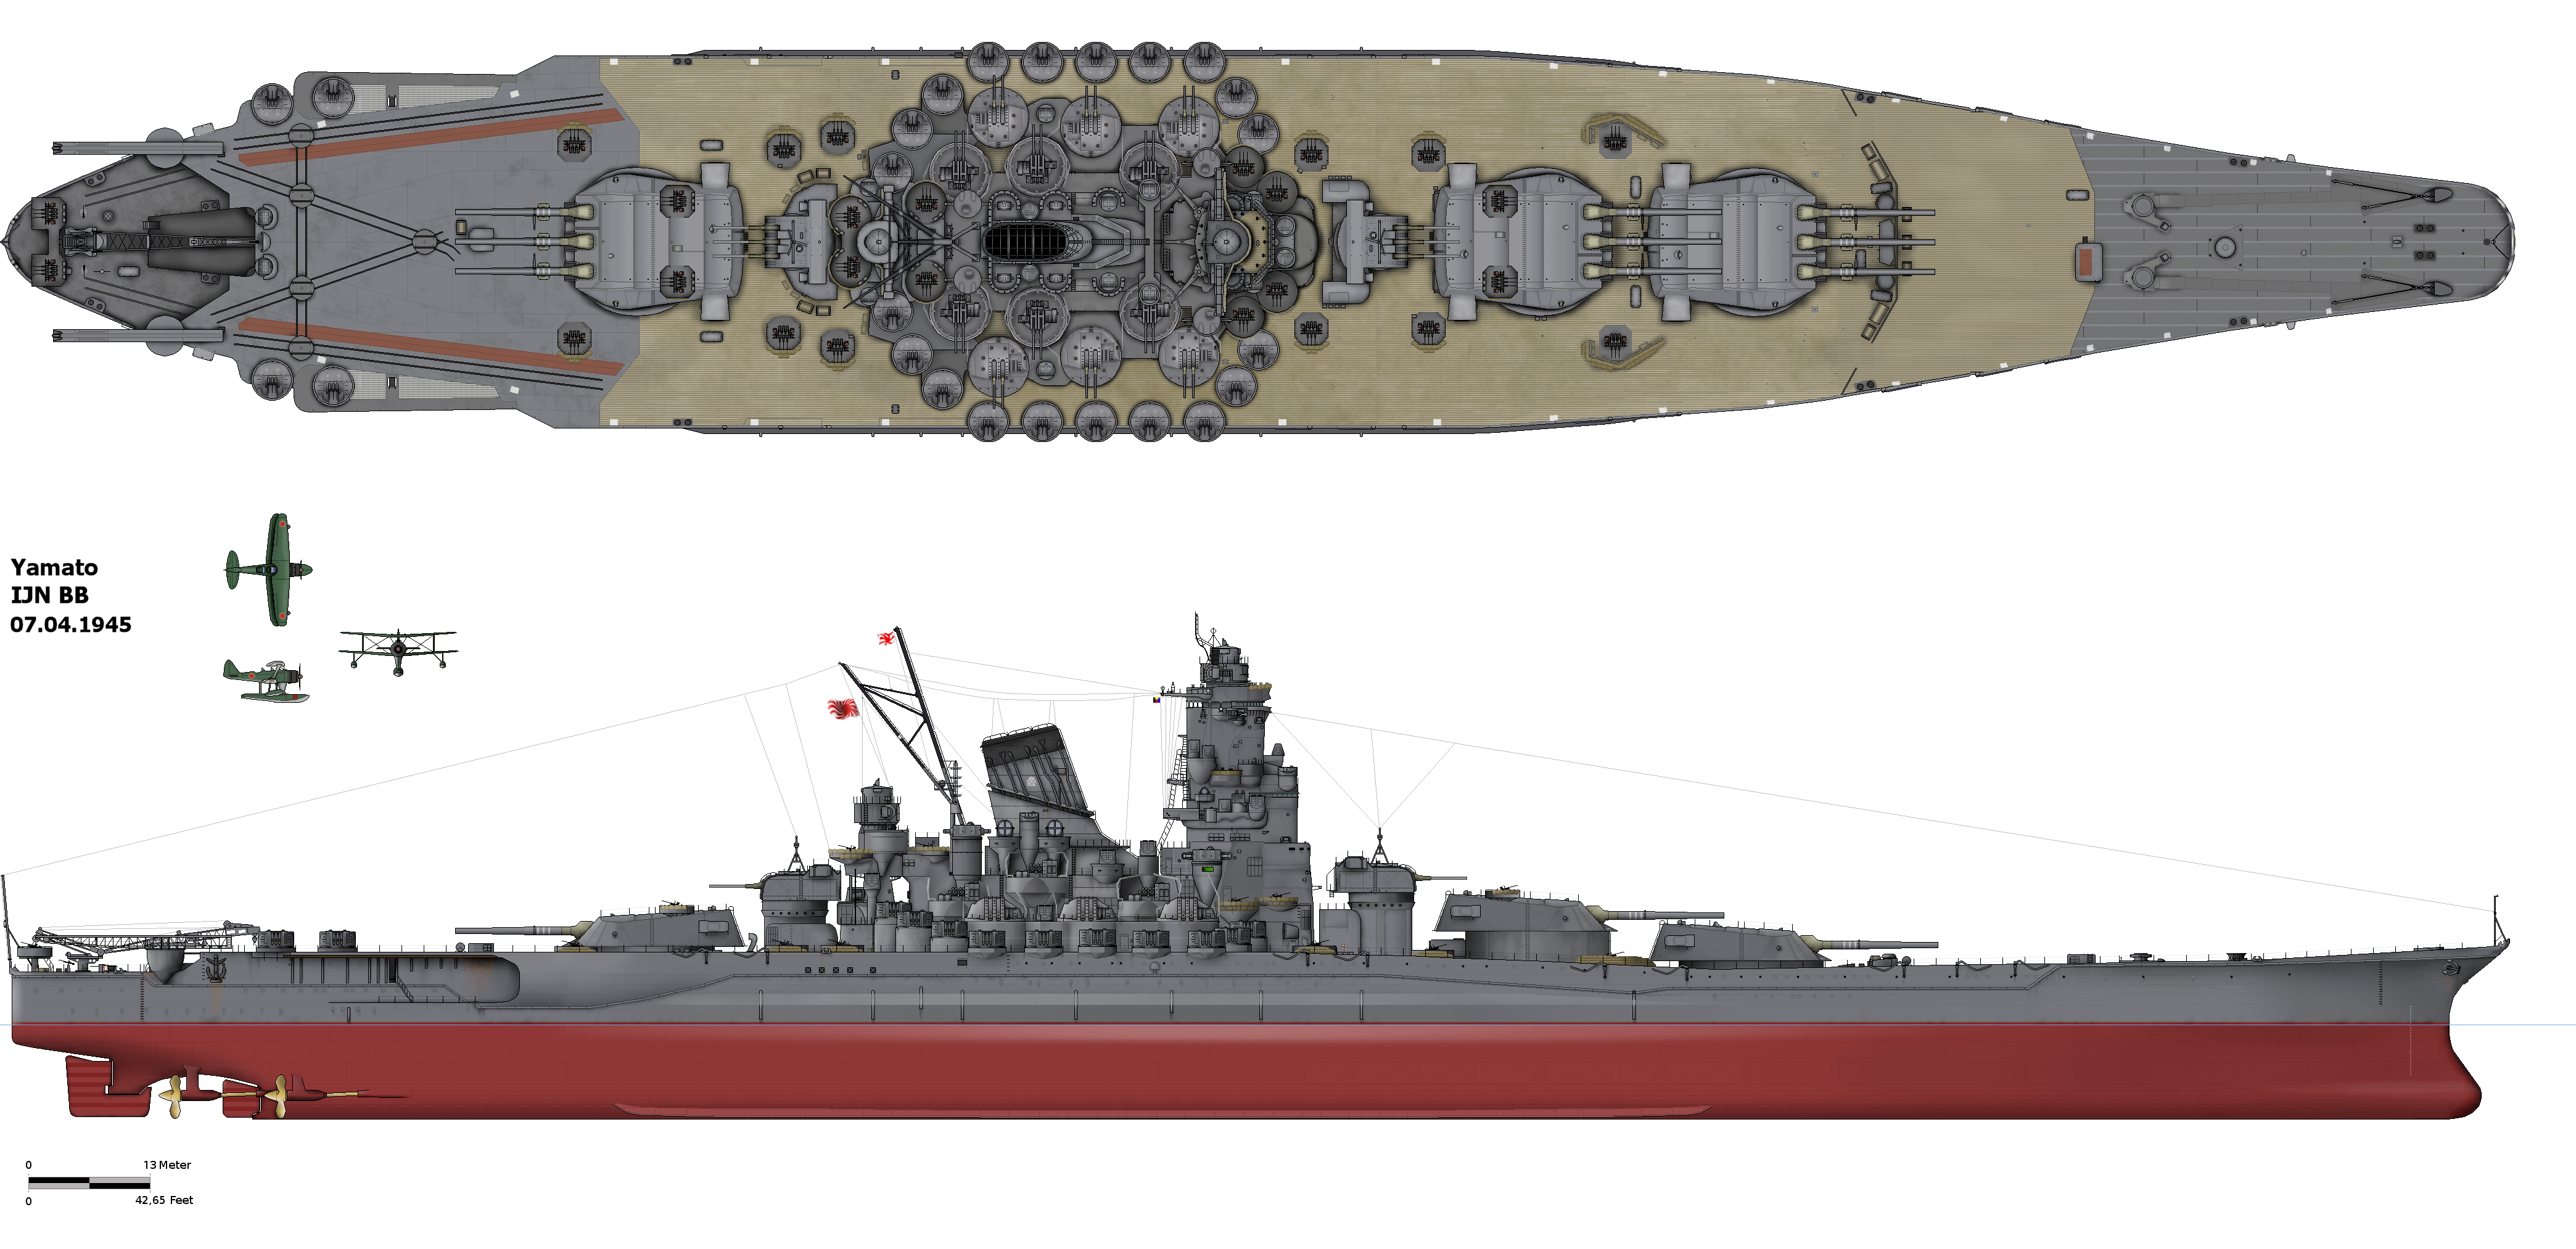 The End of an Era: The Battleship Yamato